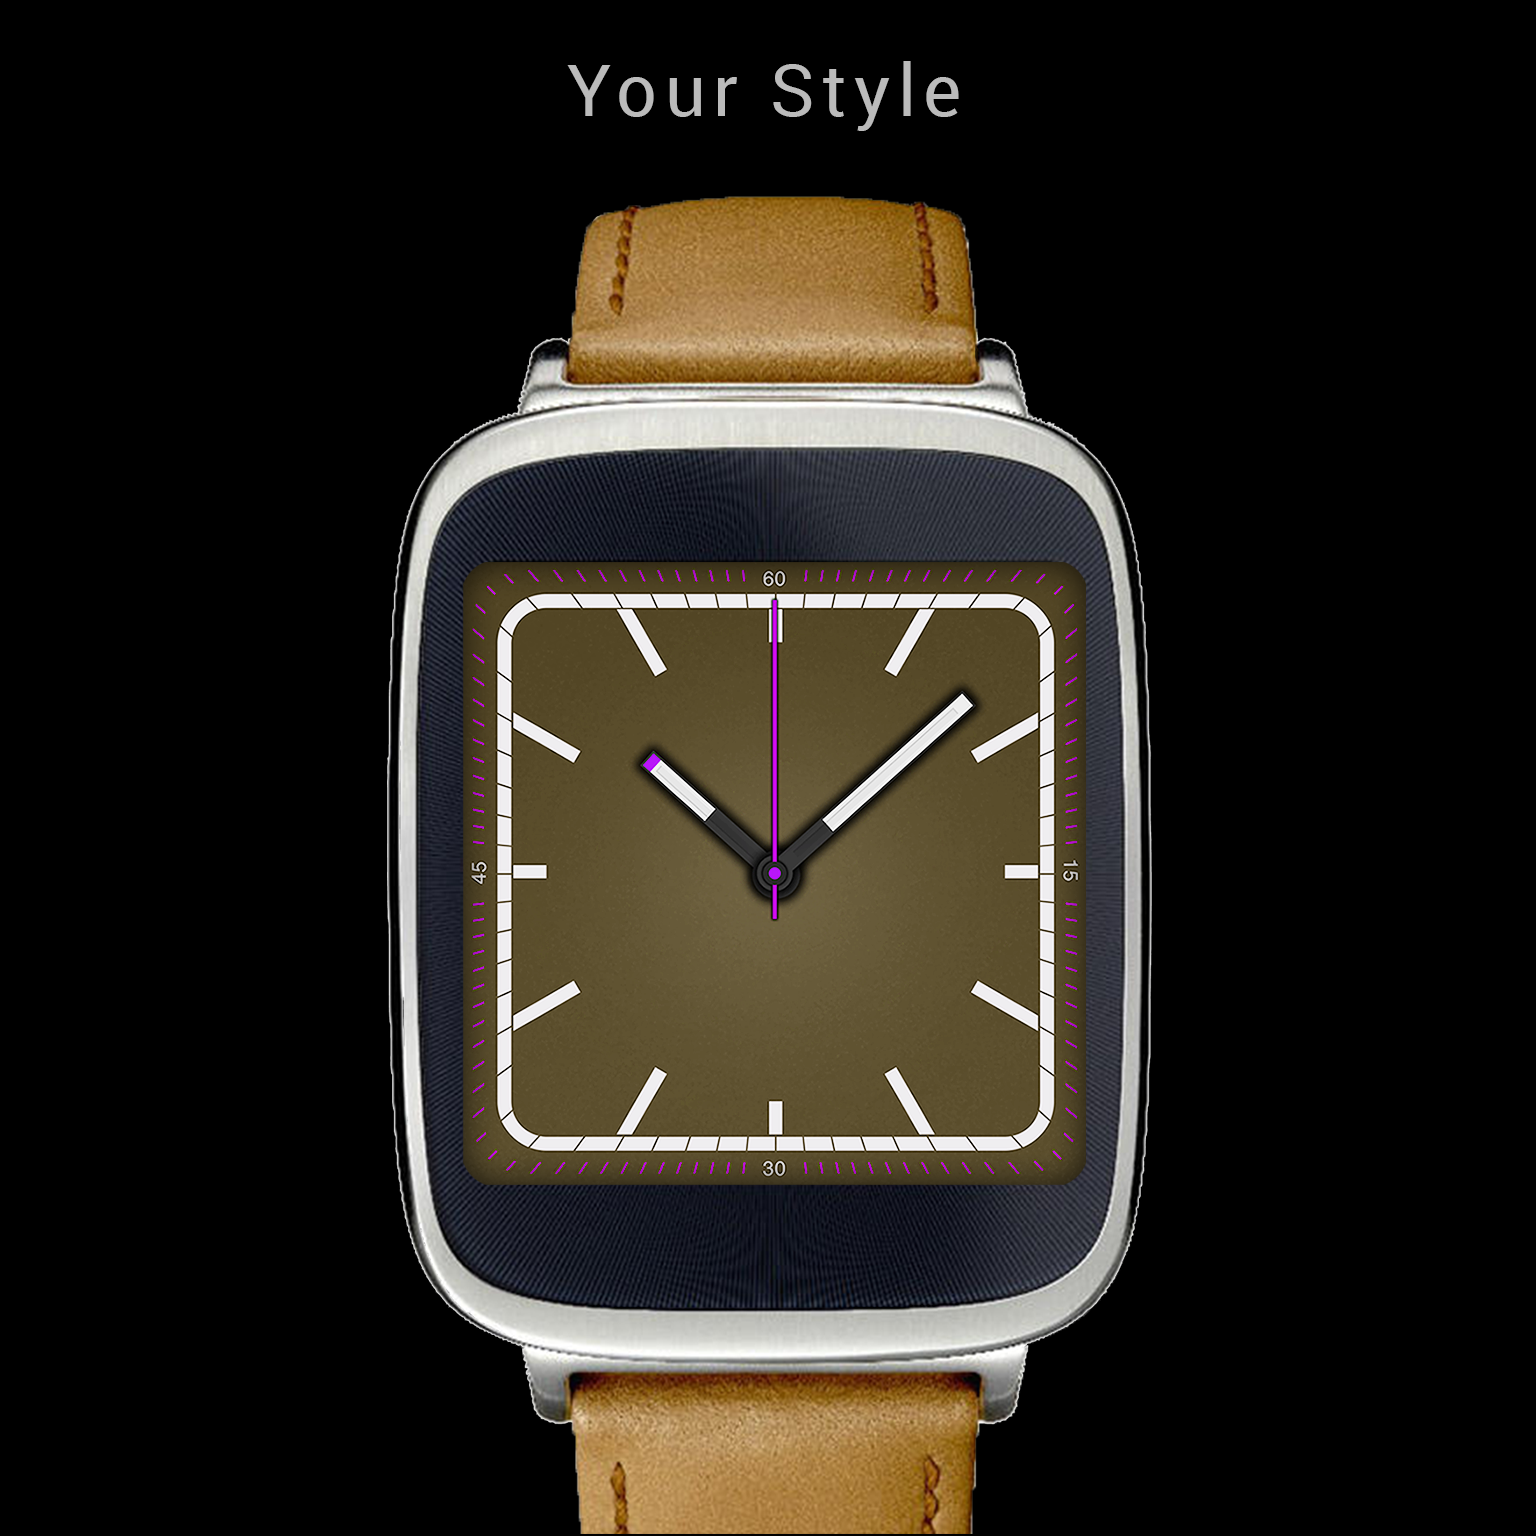 Custom-watch-face-3